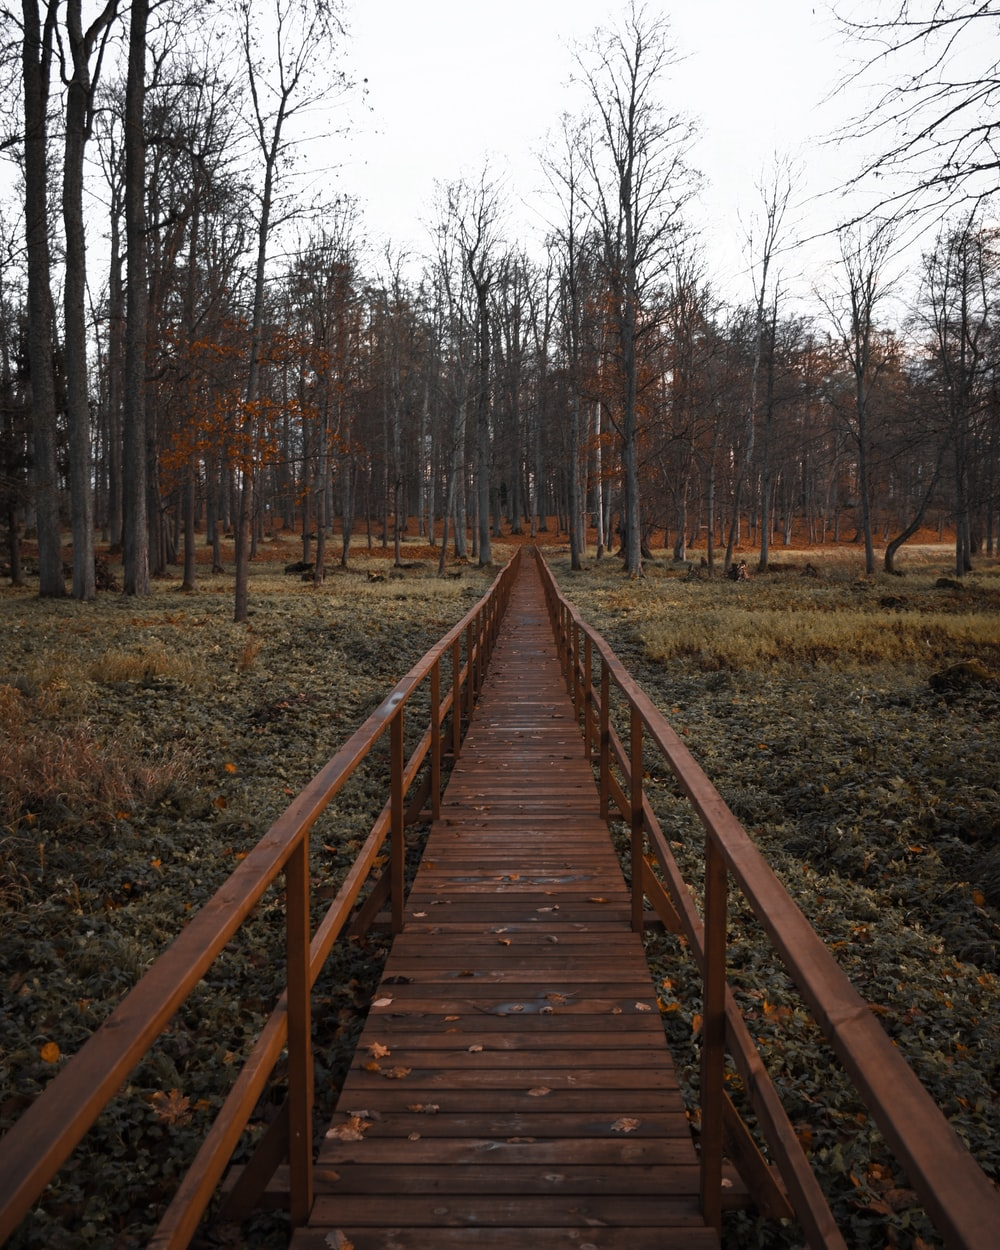 brown pathway near bare trees